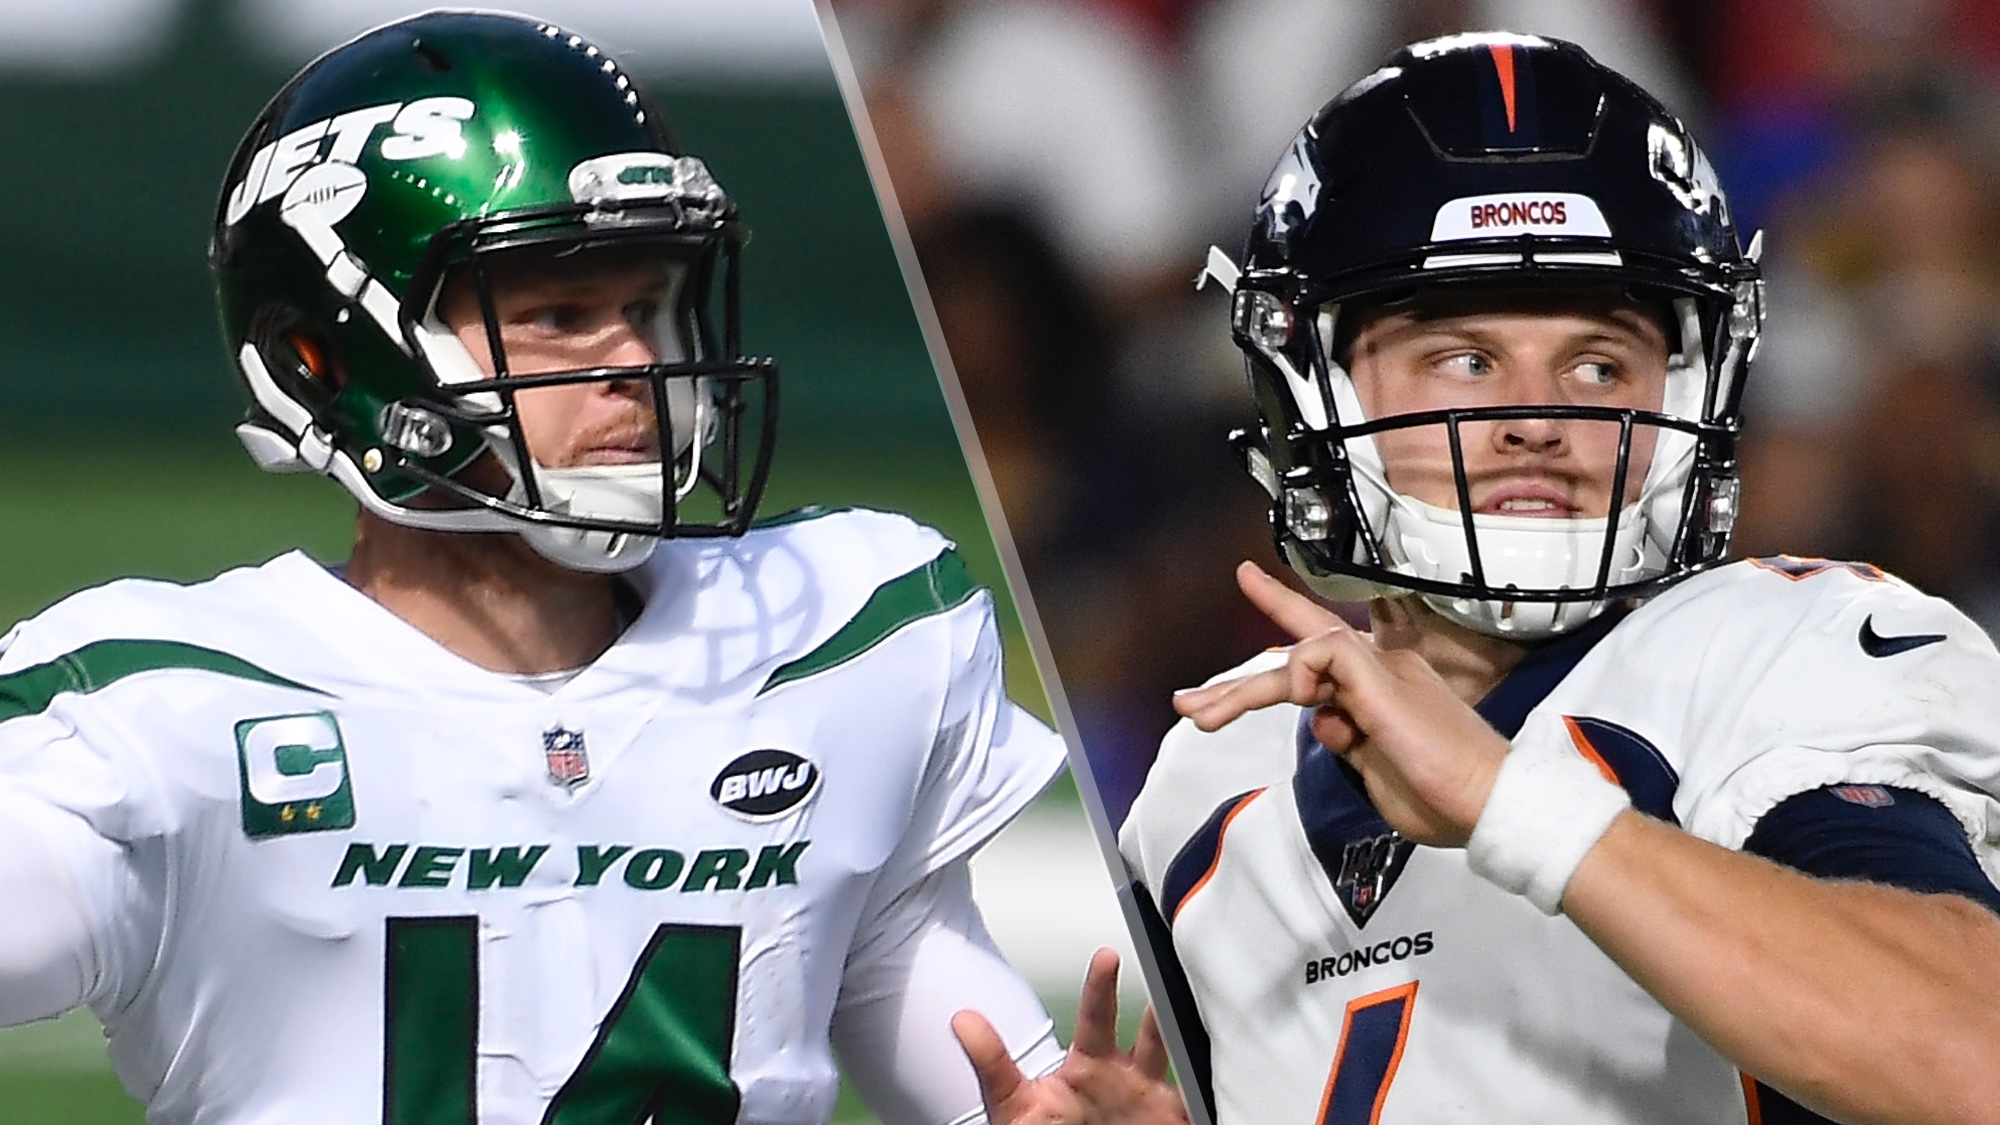 Broncos Vs Jets Live Stream How To Watch Thursday Night Football Online Tom S Guide